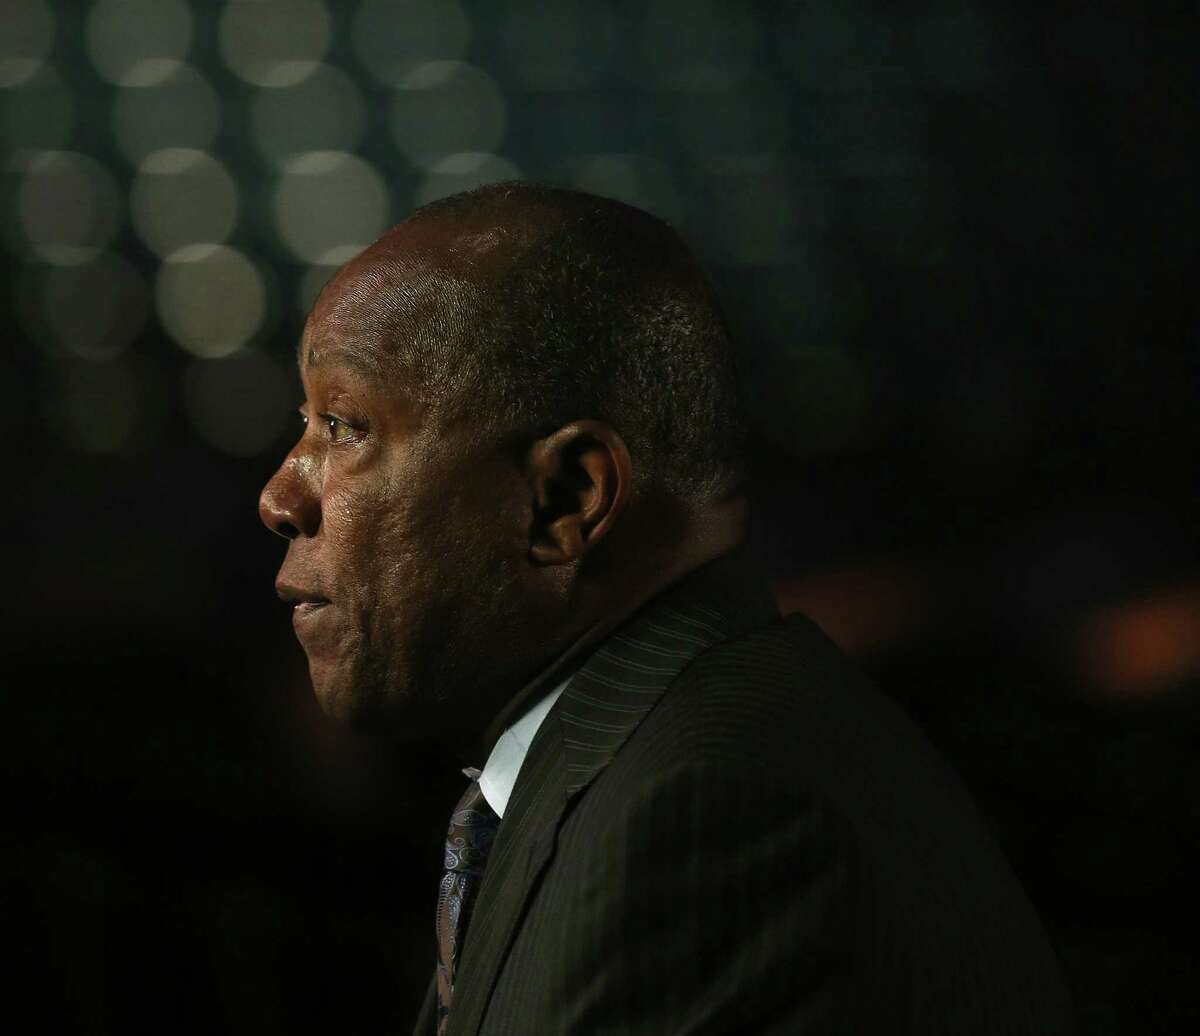 Mayor Sylvester Turner is interviewed after announcing plans for a benefit concert to raise funds and awareness for the Greater Houston Storm Relief Fund featuring Clay Walker at Lakewood Church Monday, May 9, 2016, in Houston. ( Elizabeth Conley / Houston Chronicle )